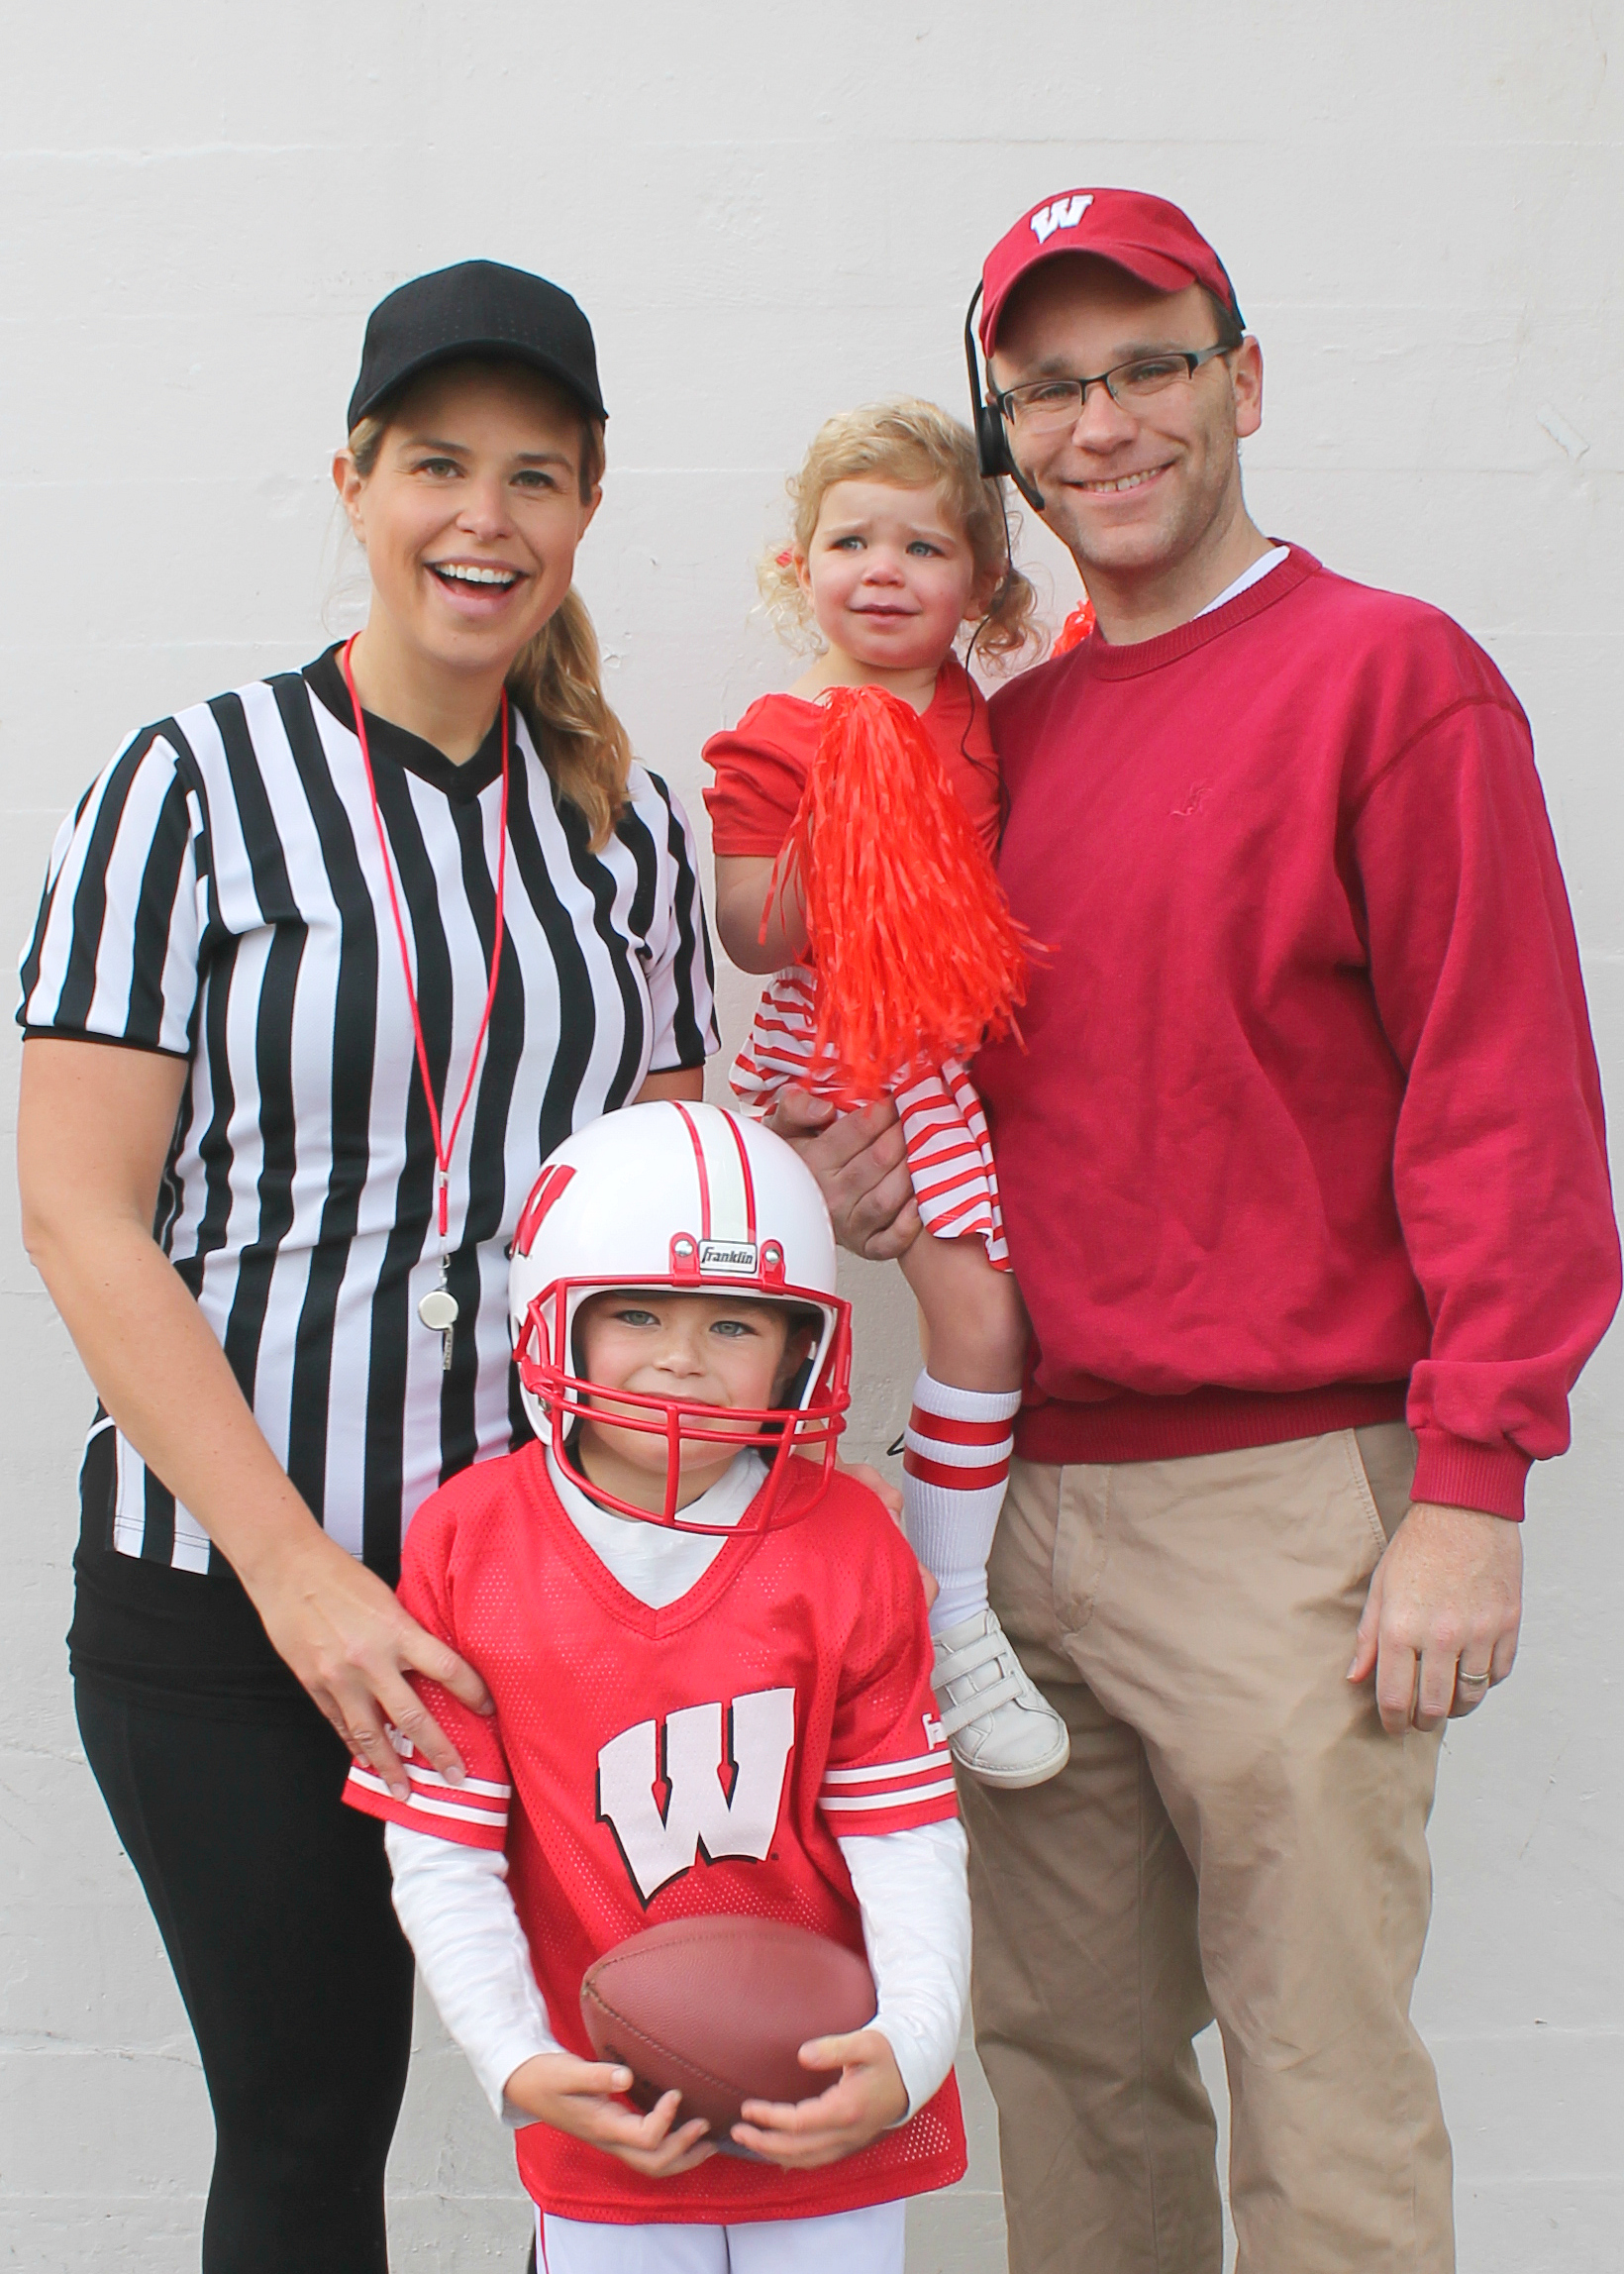 Family Halloween Costume Ideas | Group Costume Ideas | Kids Halloween Costumes | Football Team Costume